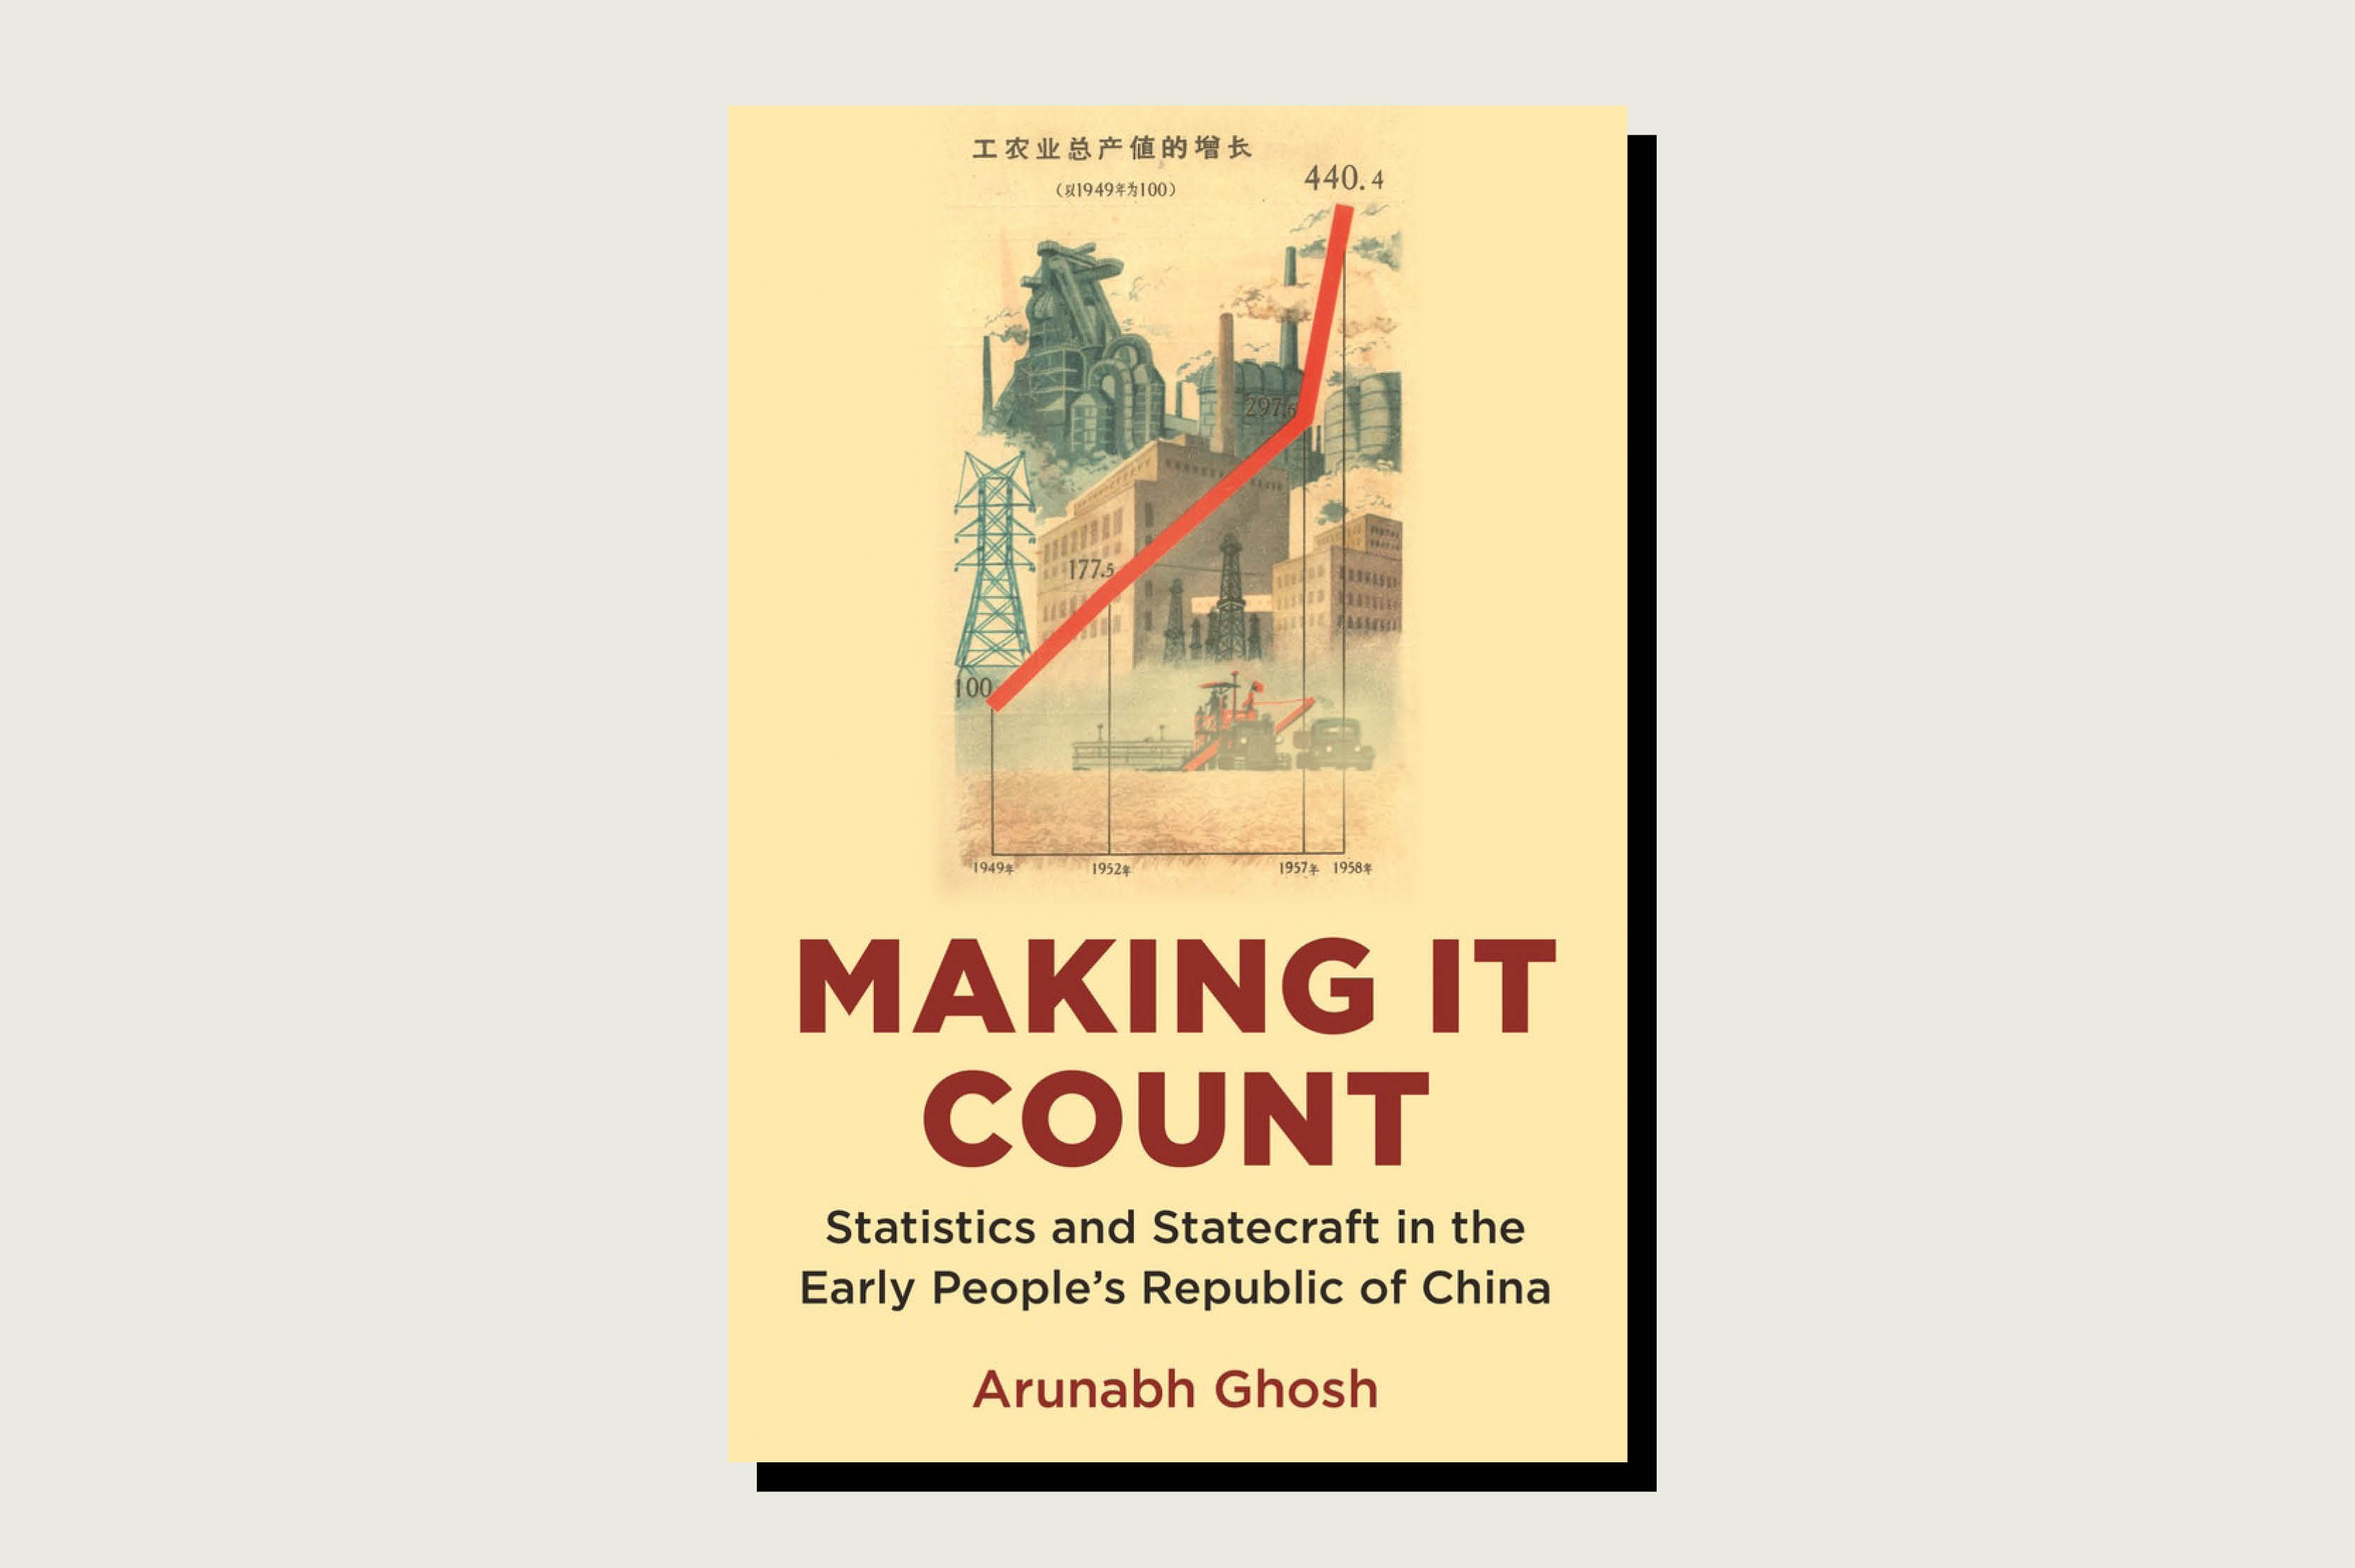 Making It Count: Statistics and Statecraft in the Early People's Republic of China, Arunabh Ghosh, Princeton University Press, pp. 360, , Month 2020